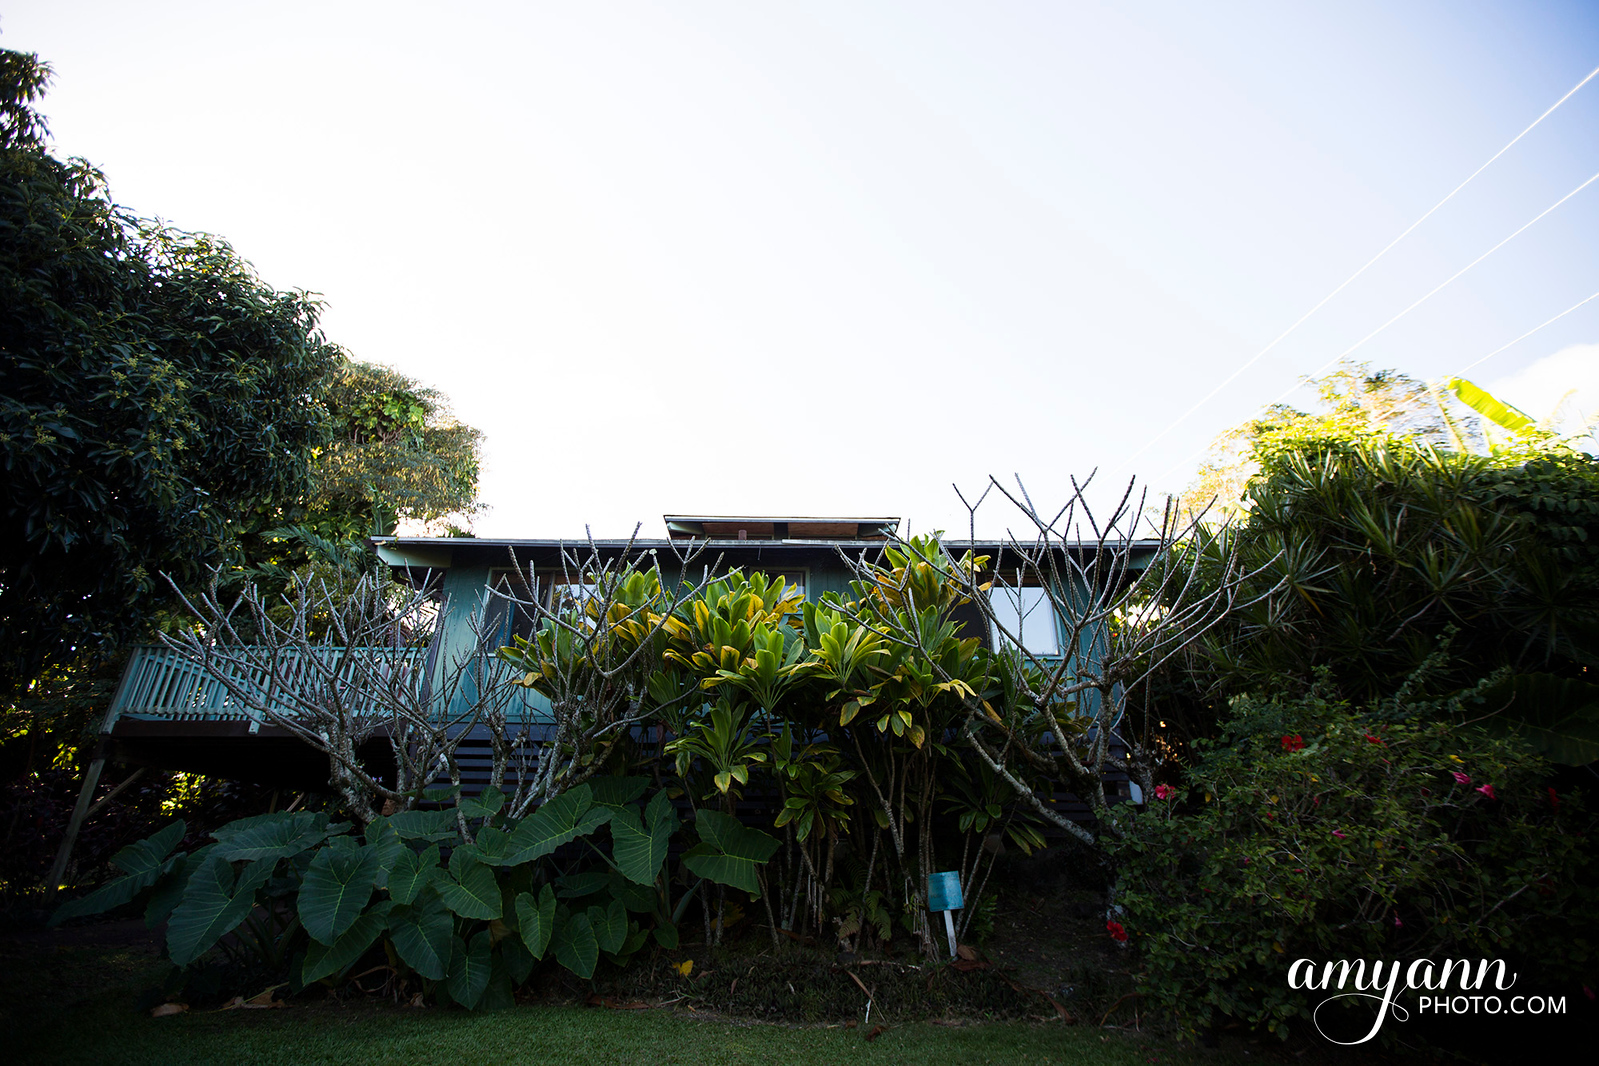 hawaii_amyannphoto_43